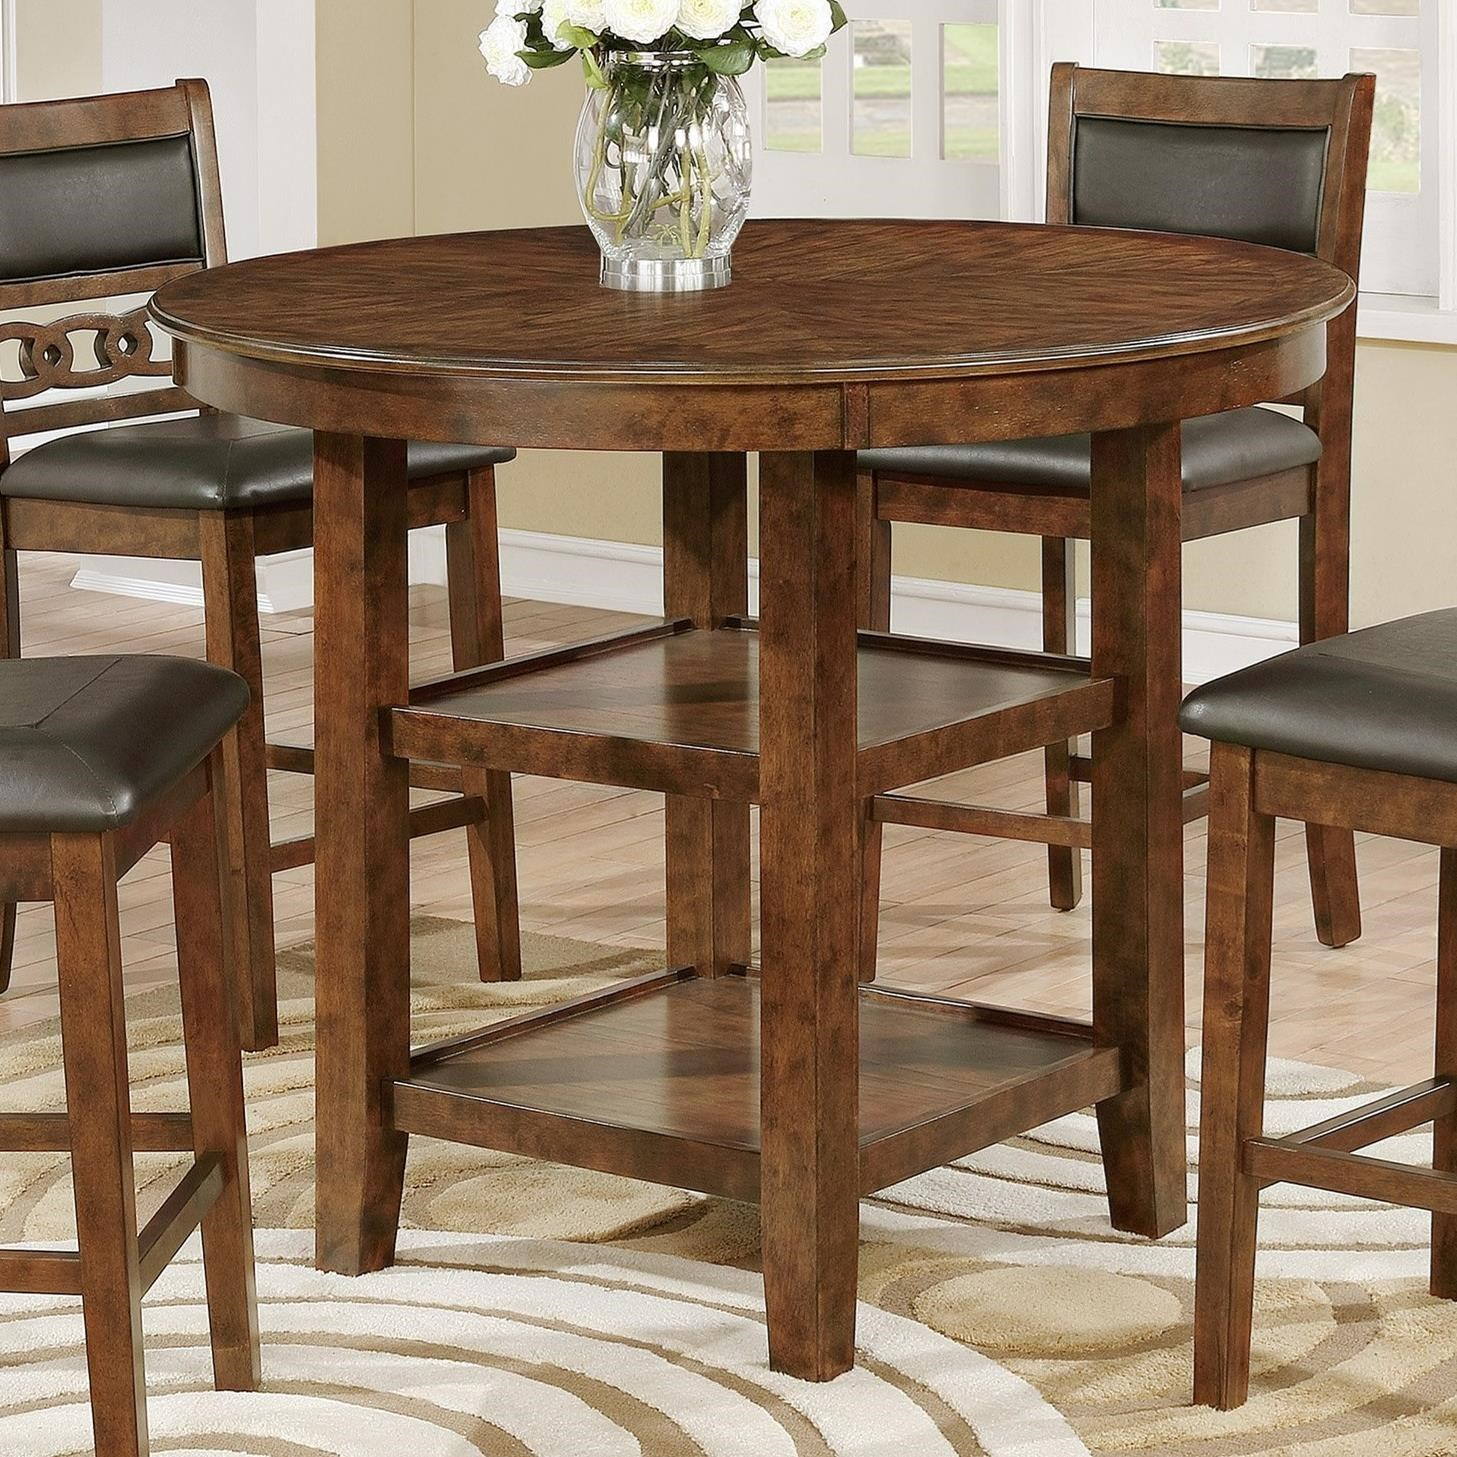 Crown Mark Cally 2716t 42 Round Counter Height Table With 2 Shelves